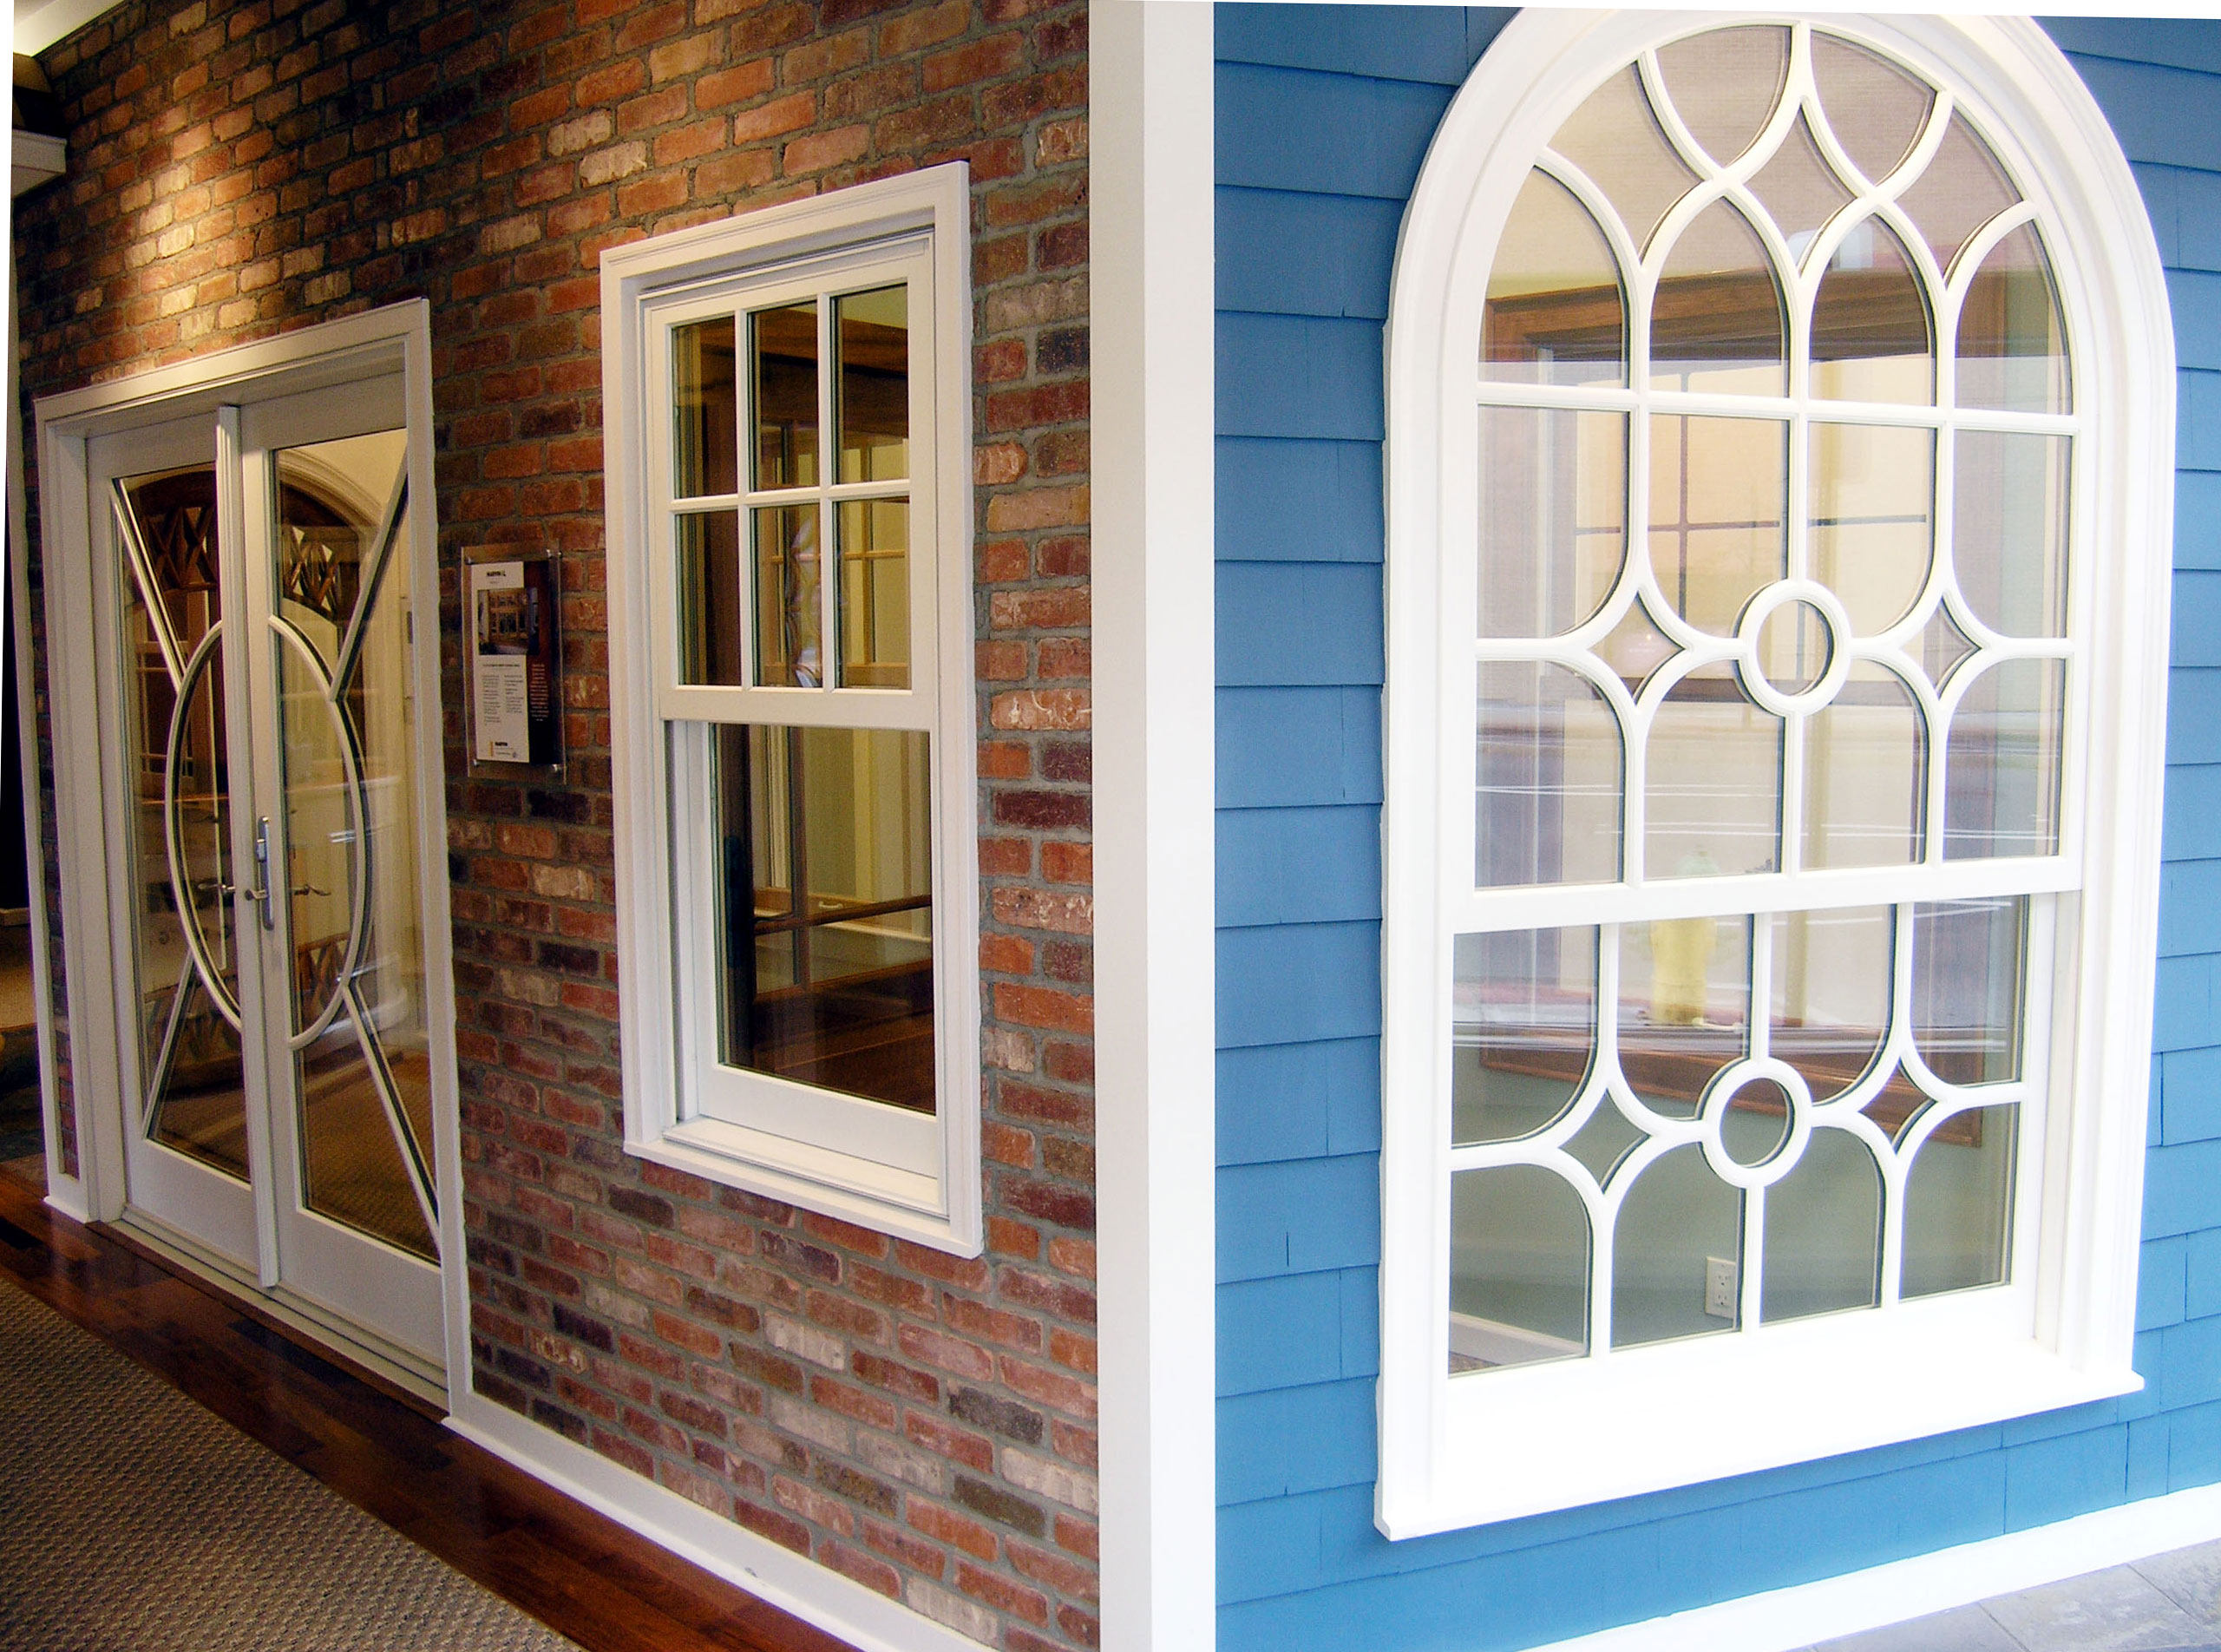 About us elmsford ny authentic window design for Window door design